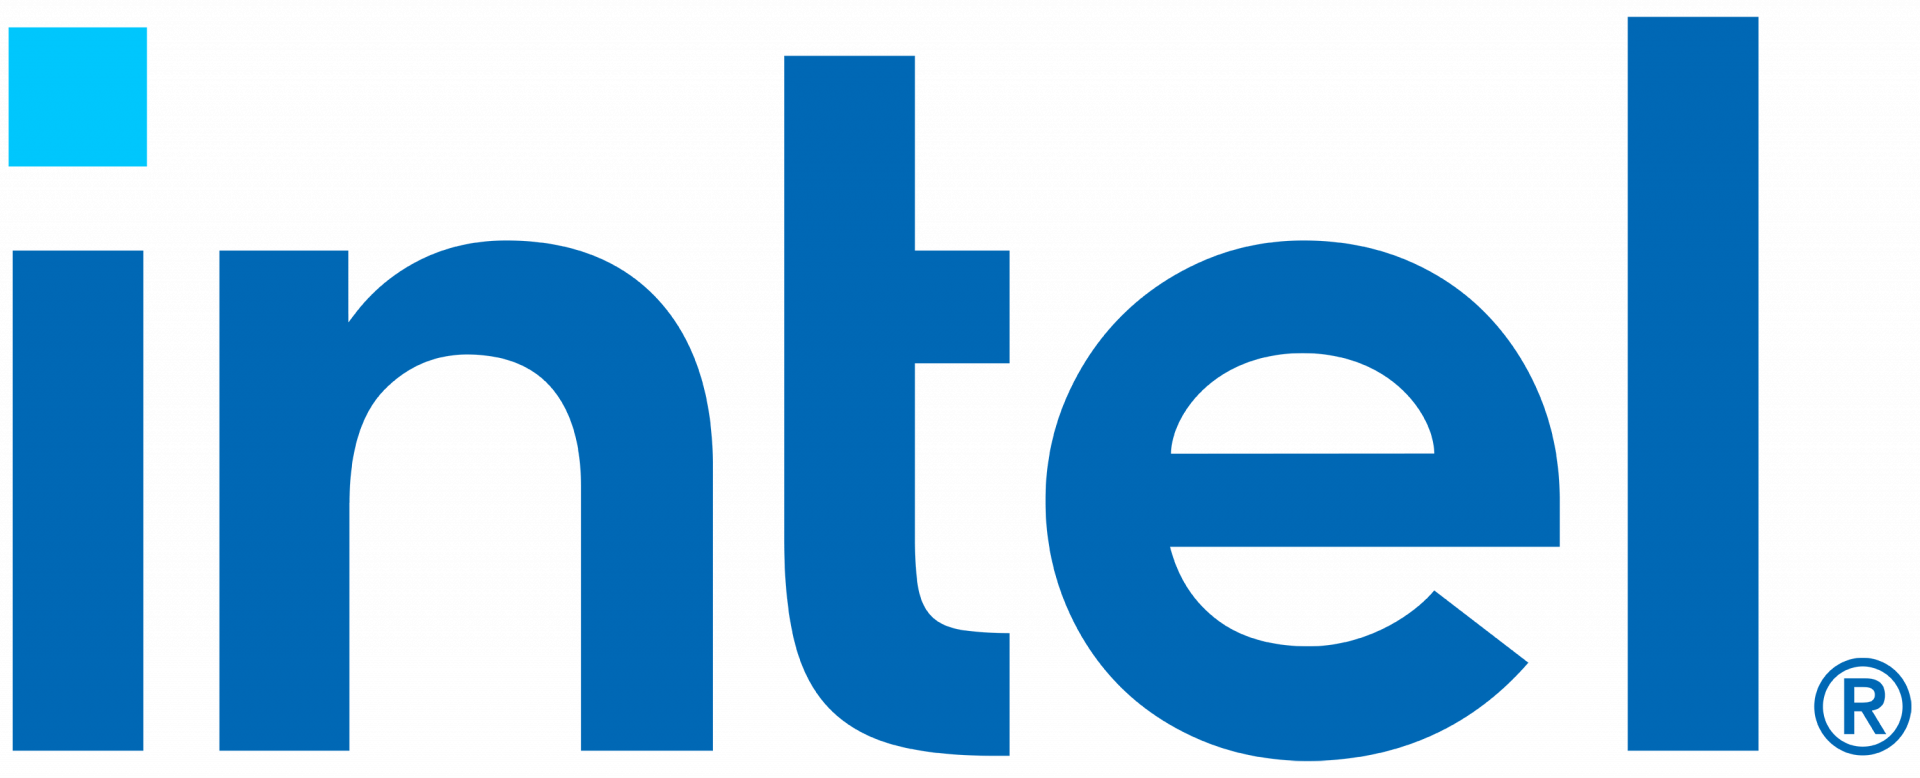 Intel-logo-nobox.png